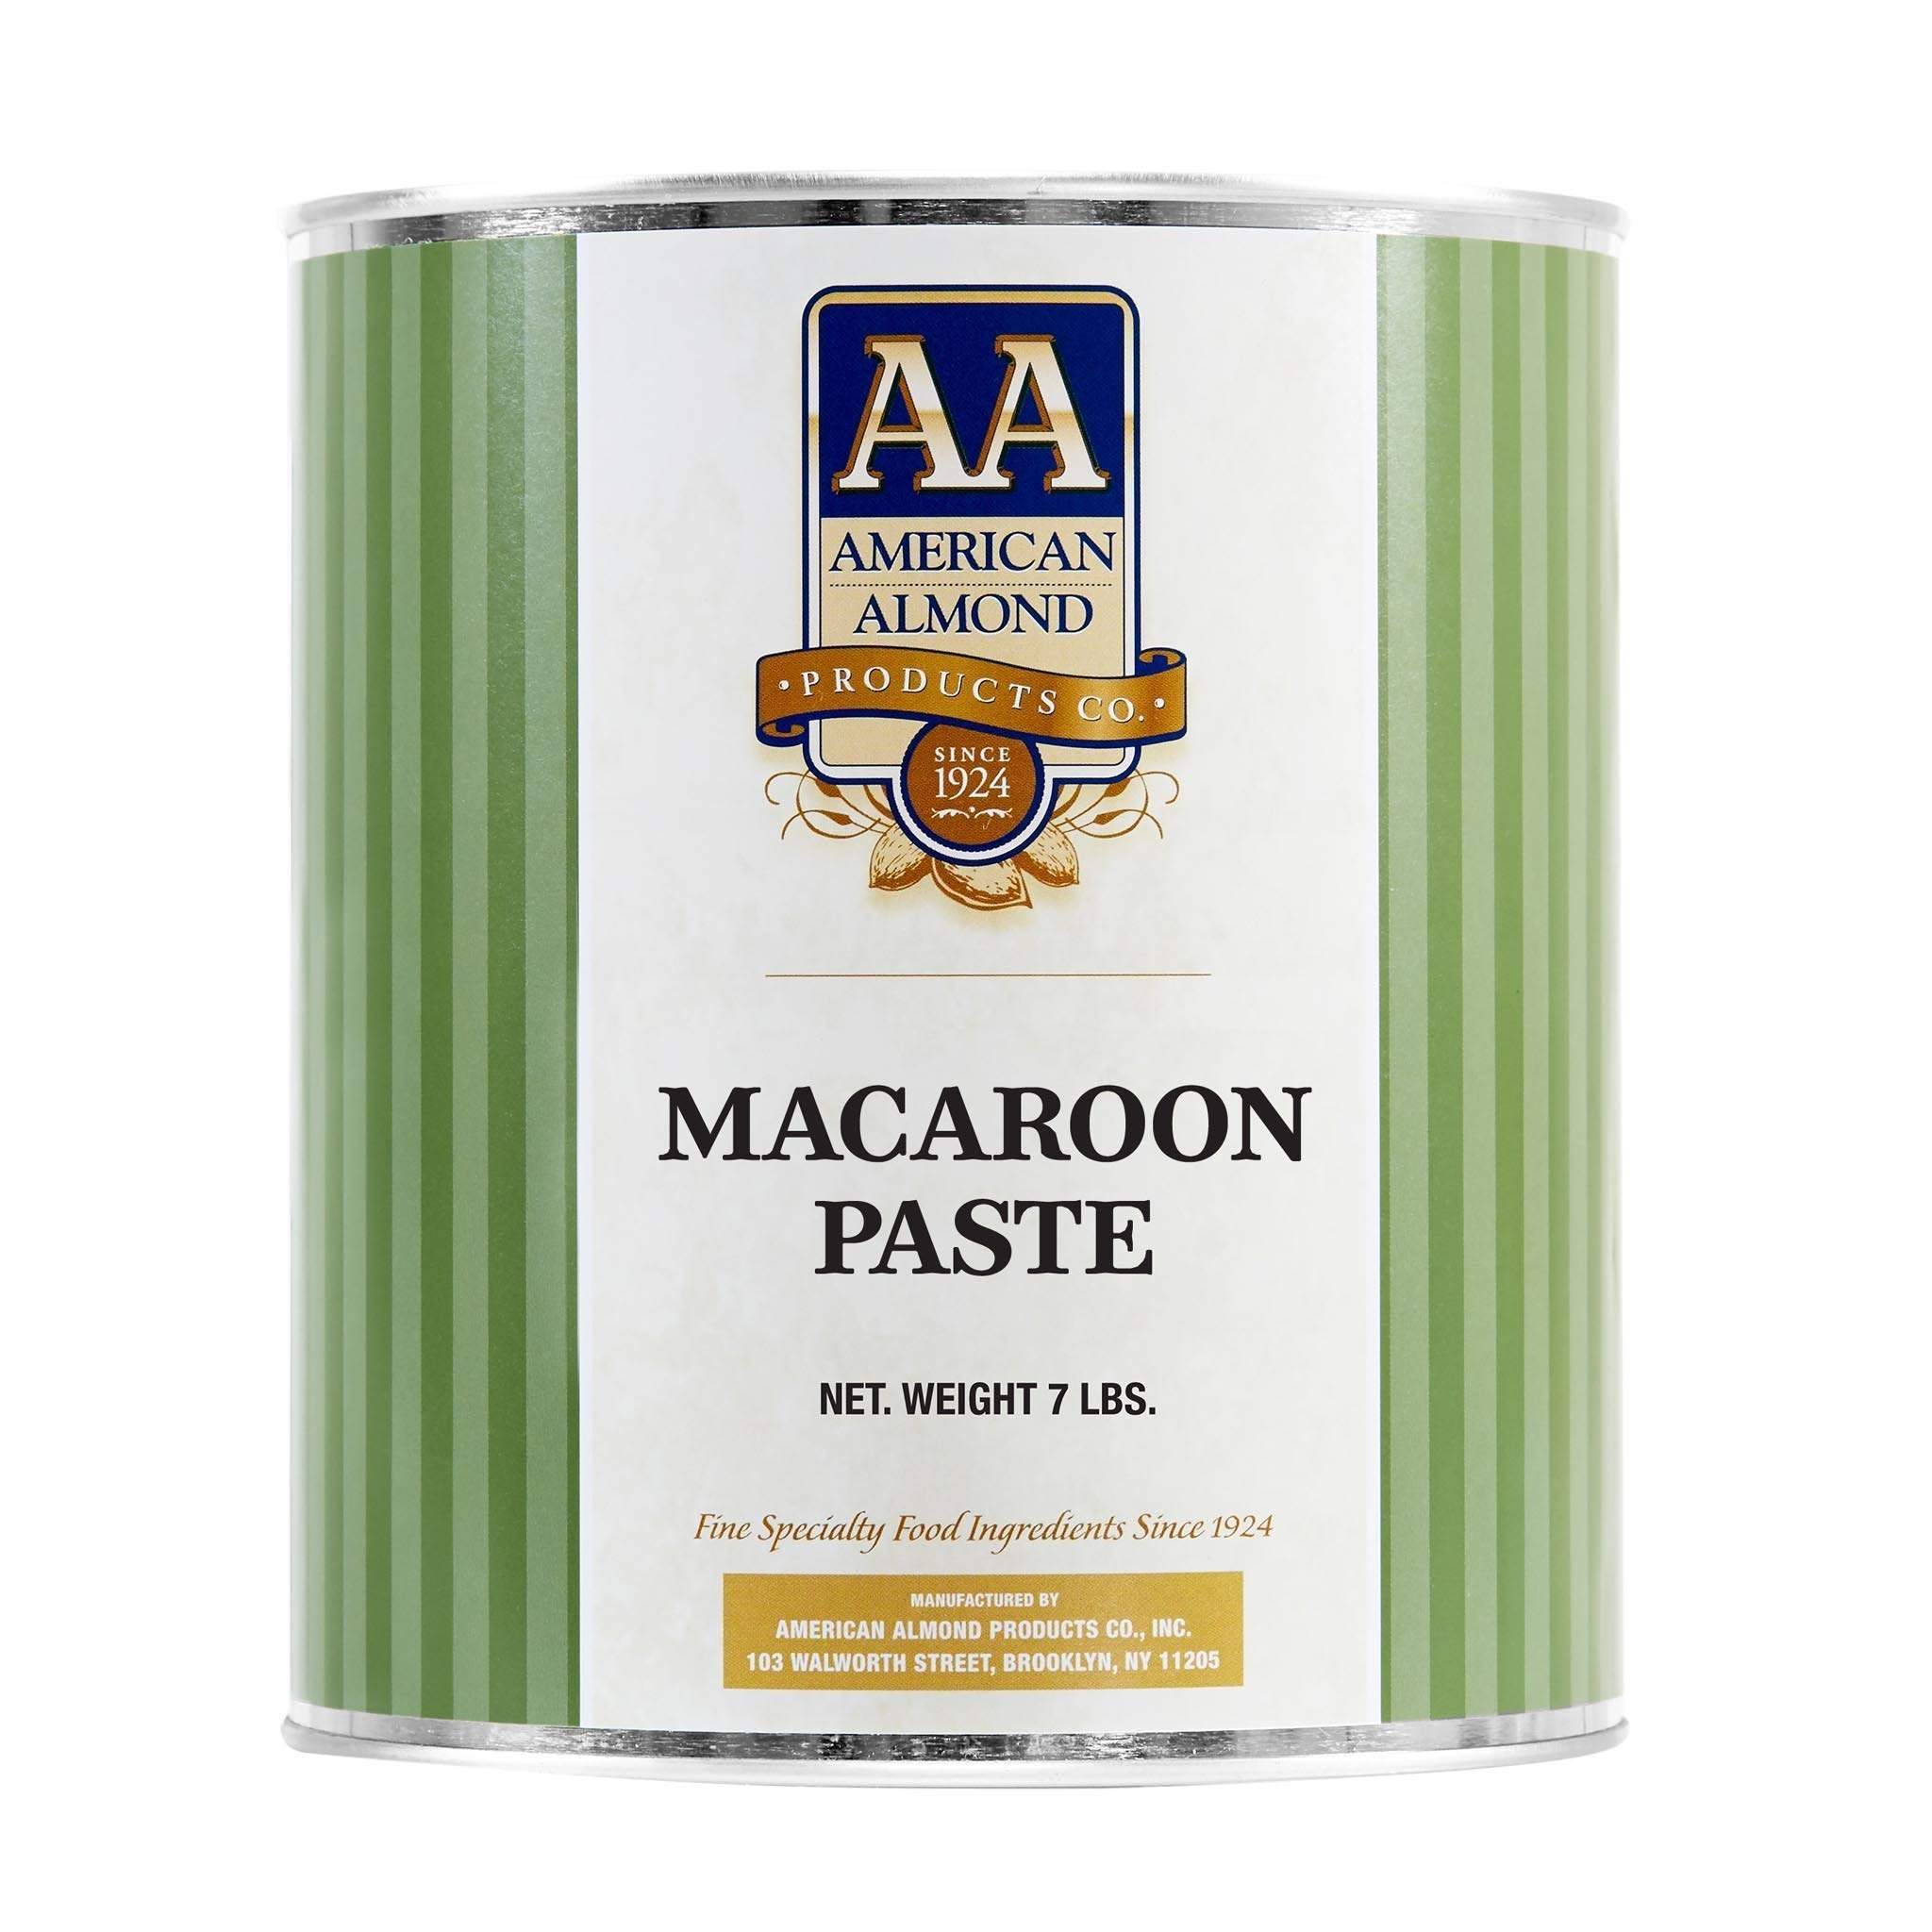 American Almond Almond Paste - Case of Six 7 lb Cans